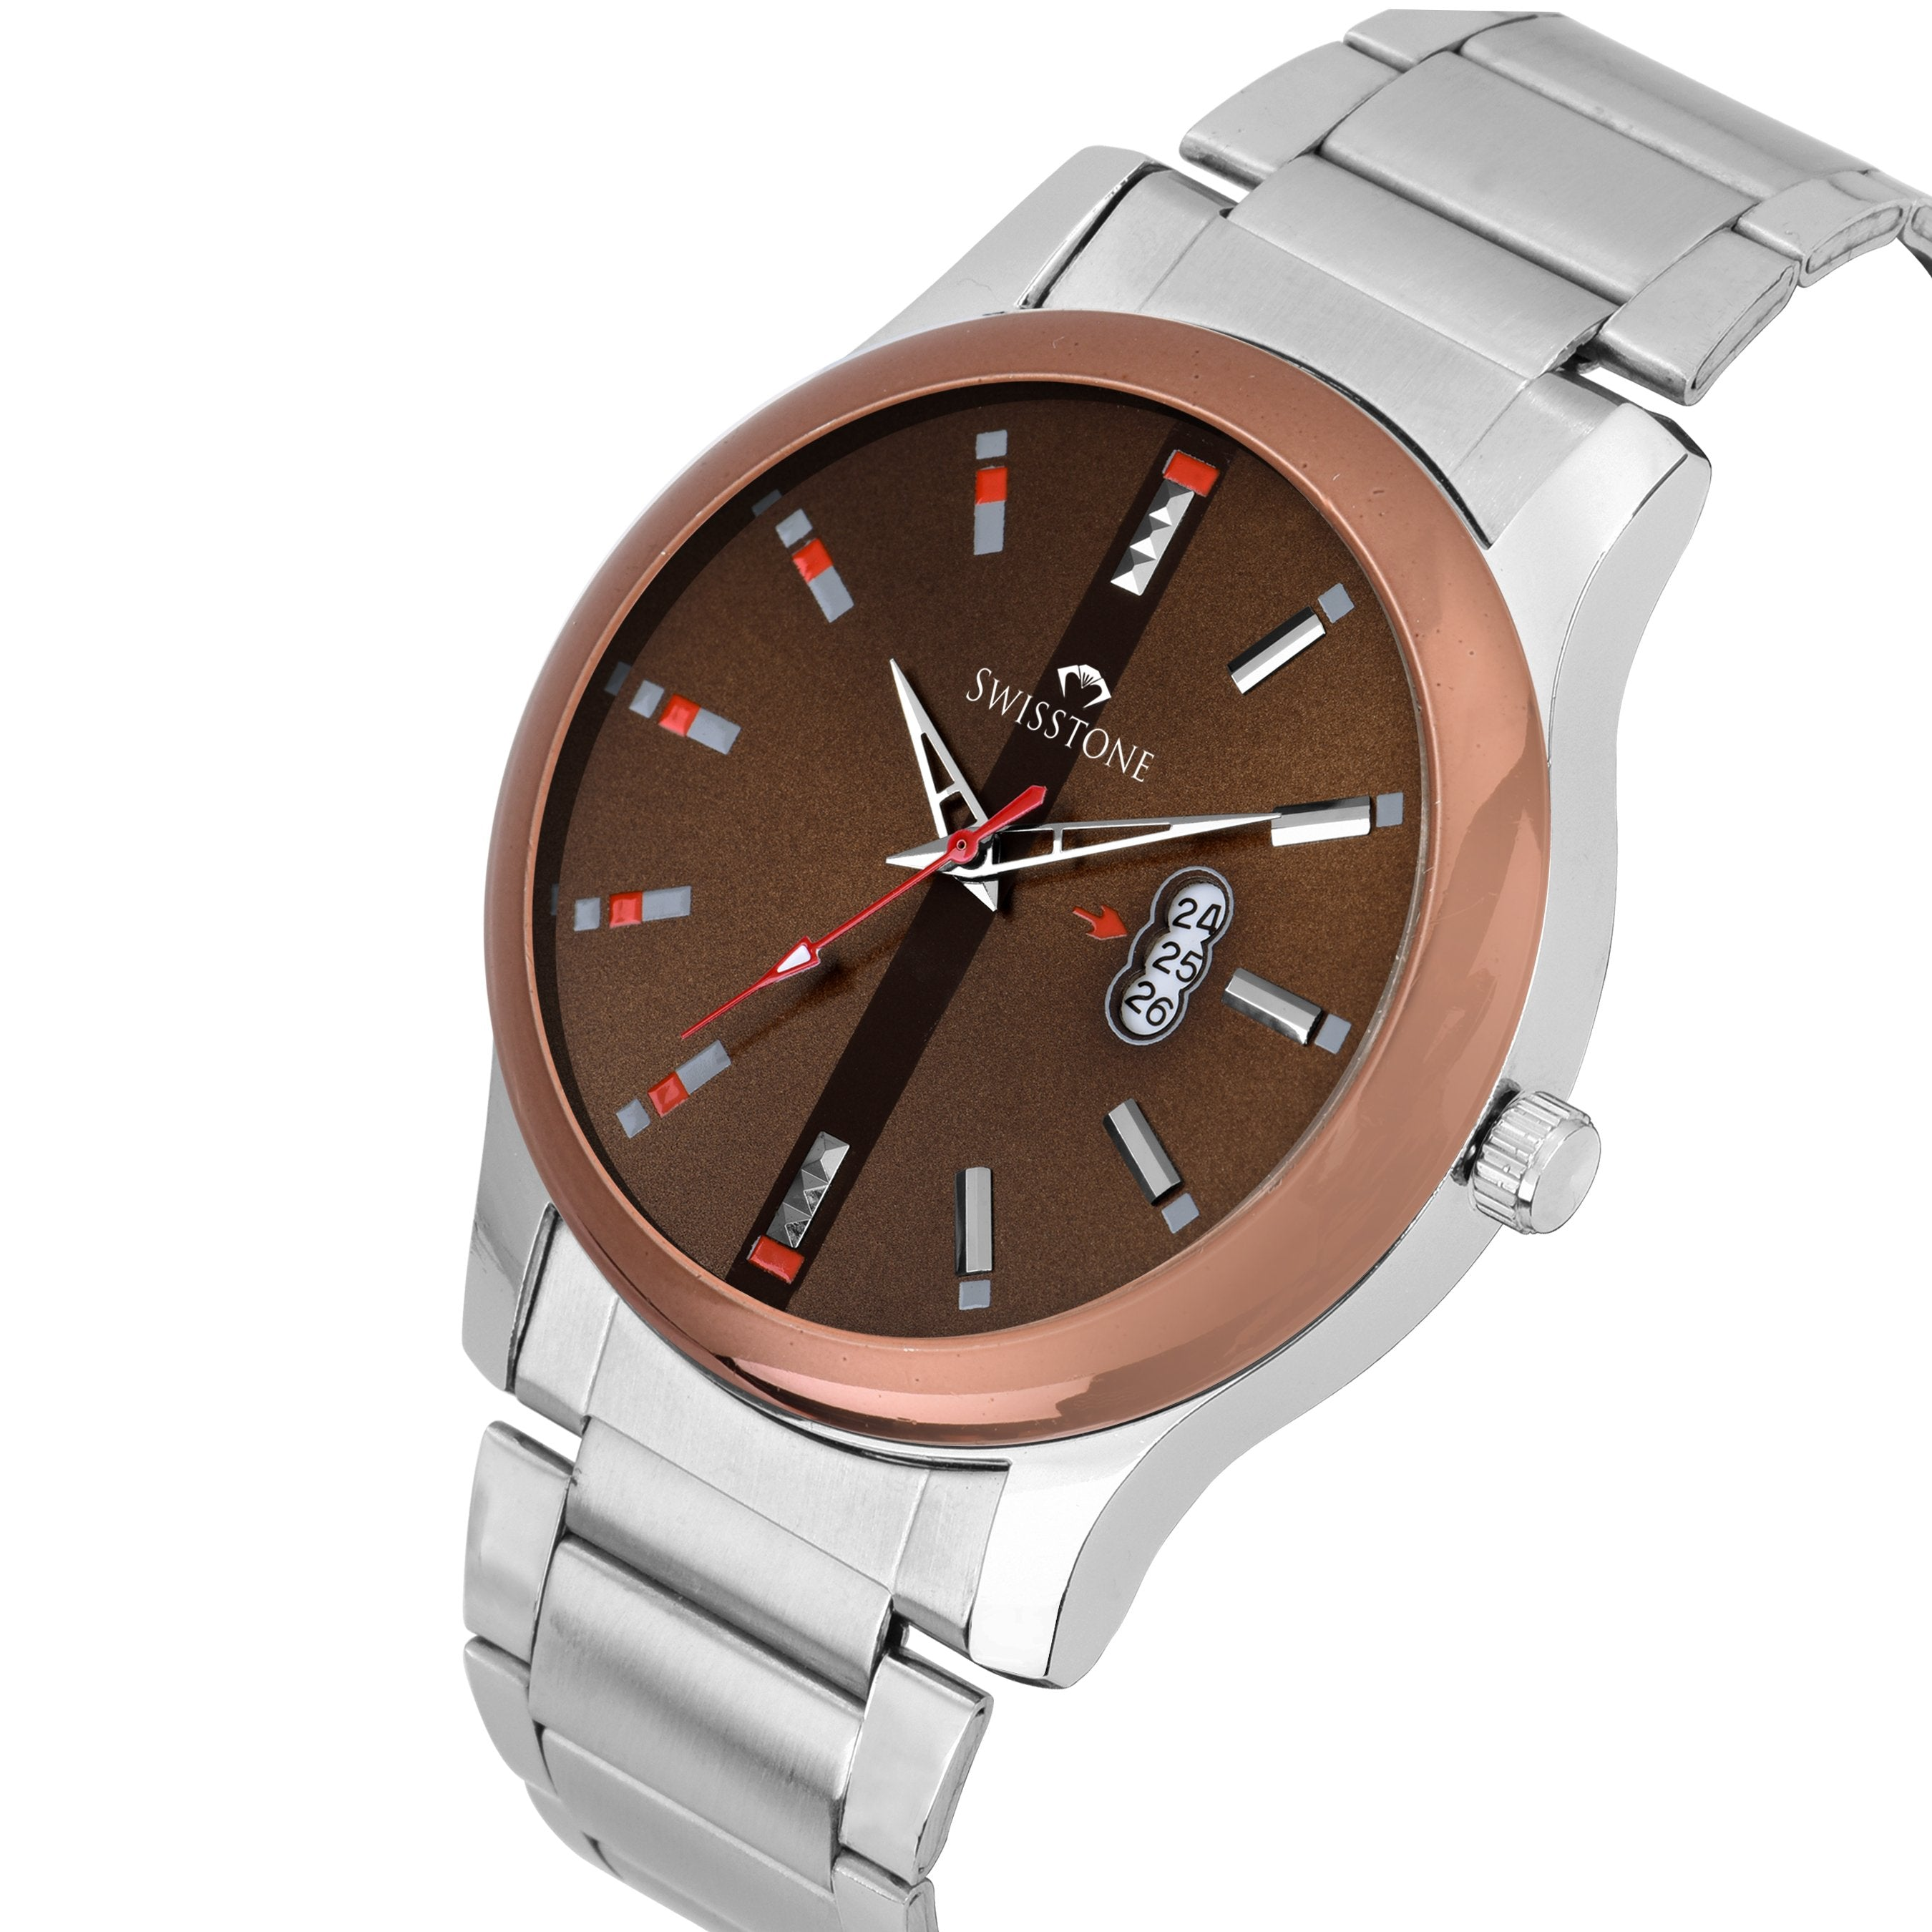 SWISSTONE SW475-BRW-CH Wrist Watch for Men